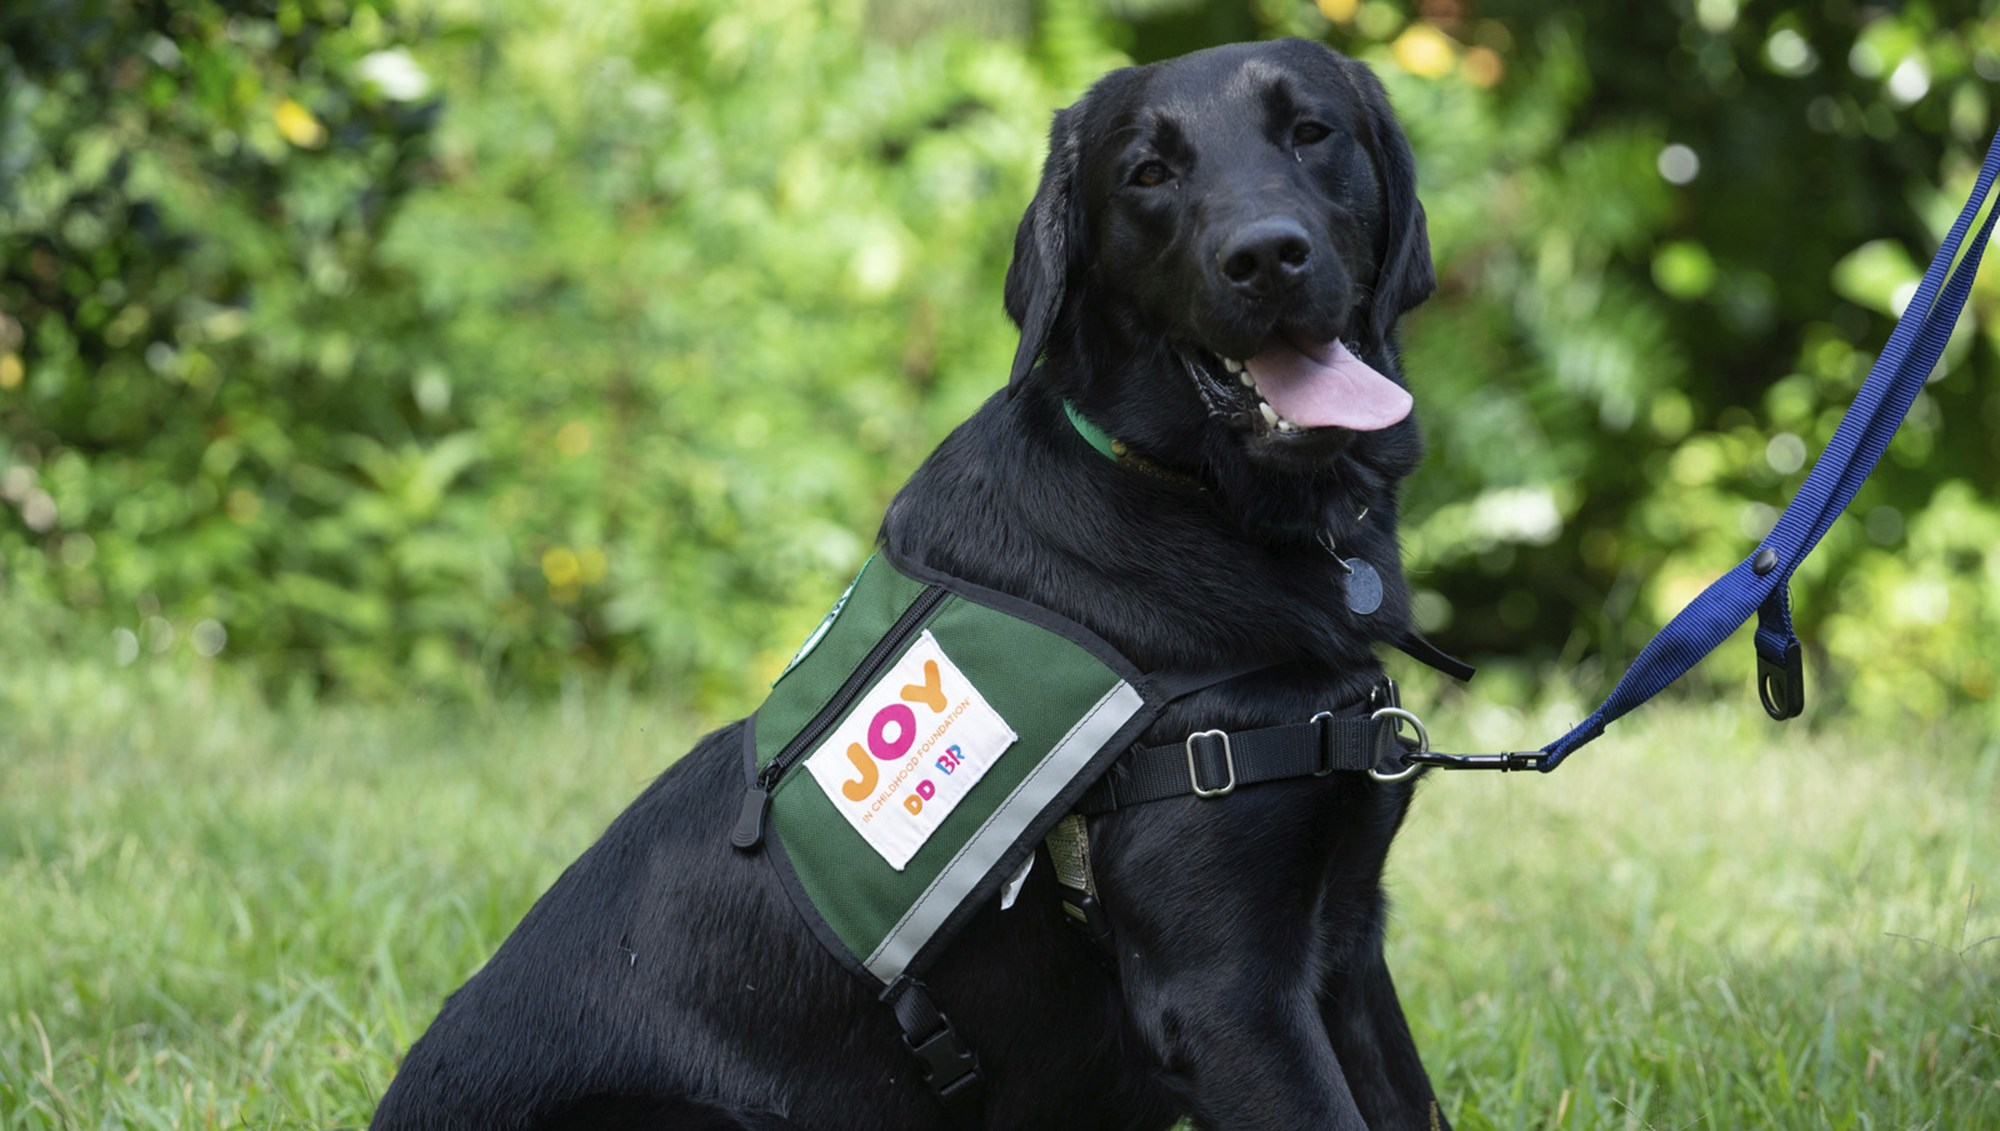 Dunkin' Launches Dogs for Joy Program That Aims to Bring Dogs to Children's Hospitals Nationwide